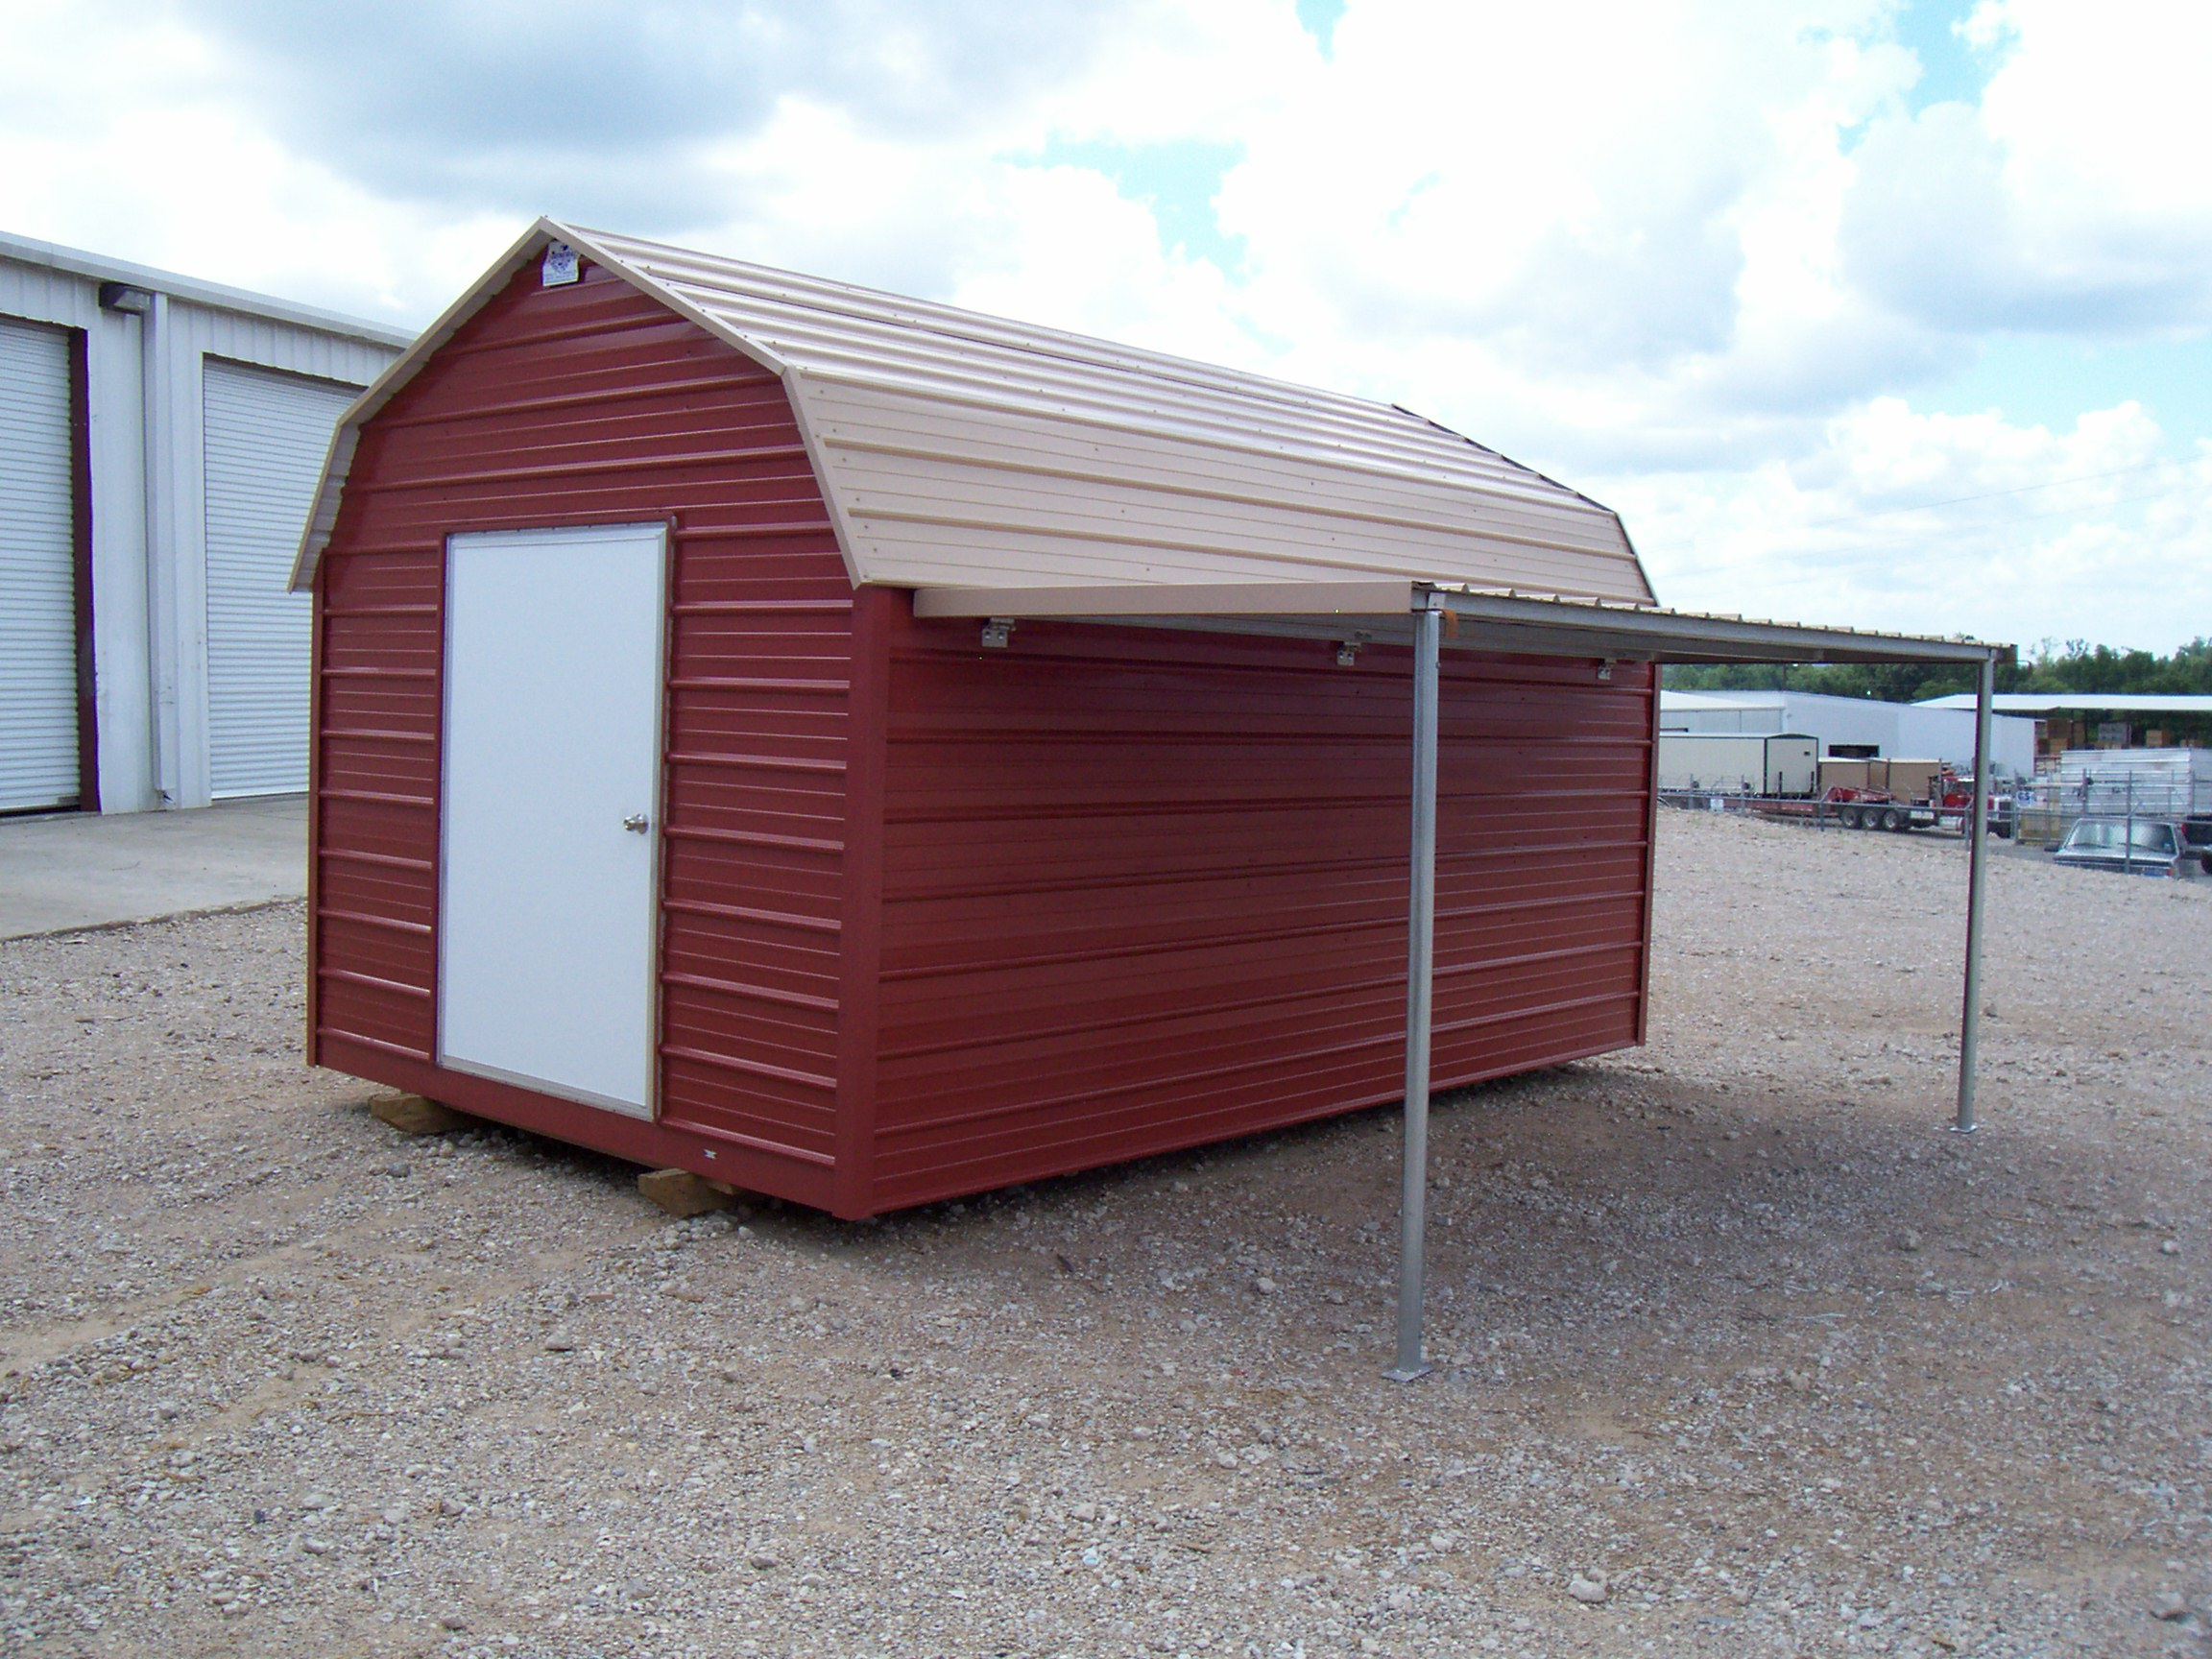 premier deluxe photo enlarge storage dlbc cabin barns barn lofted to brochure building click